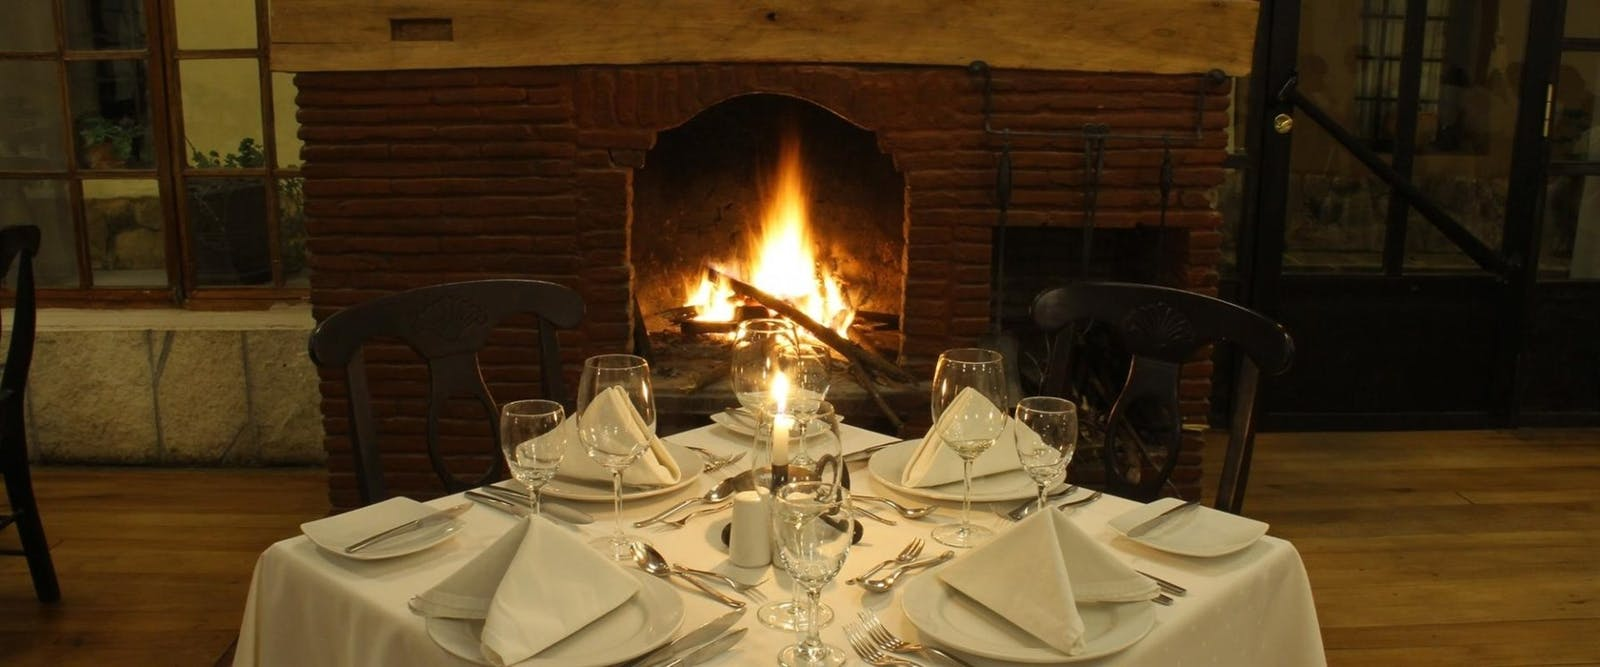 Restaurant table in front of fireplace, Sonesta Posada del Inca Yucay